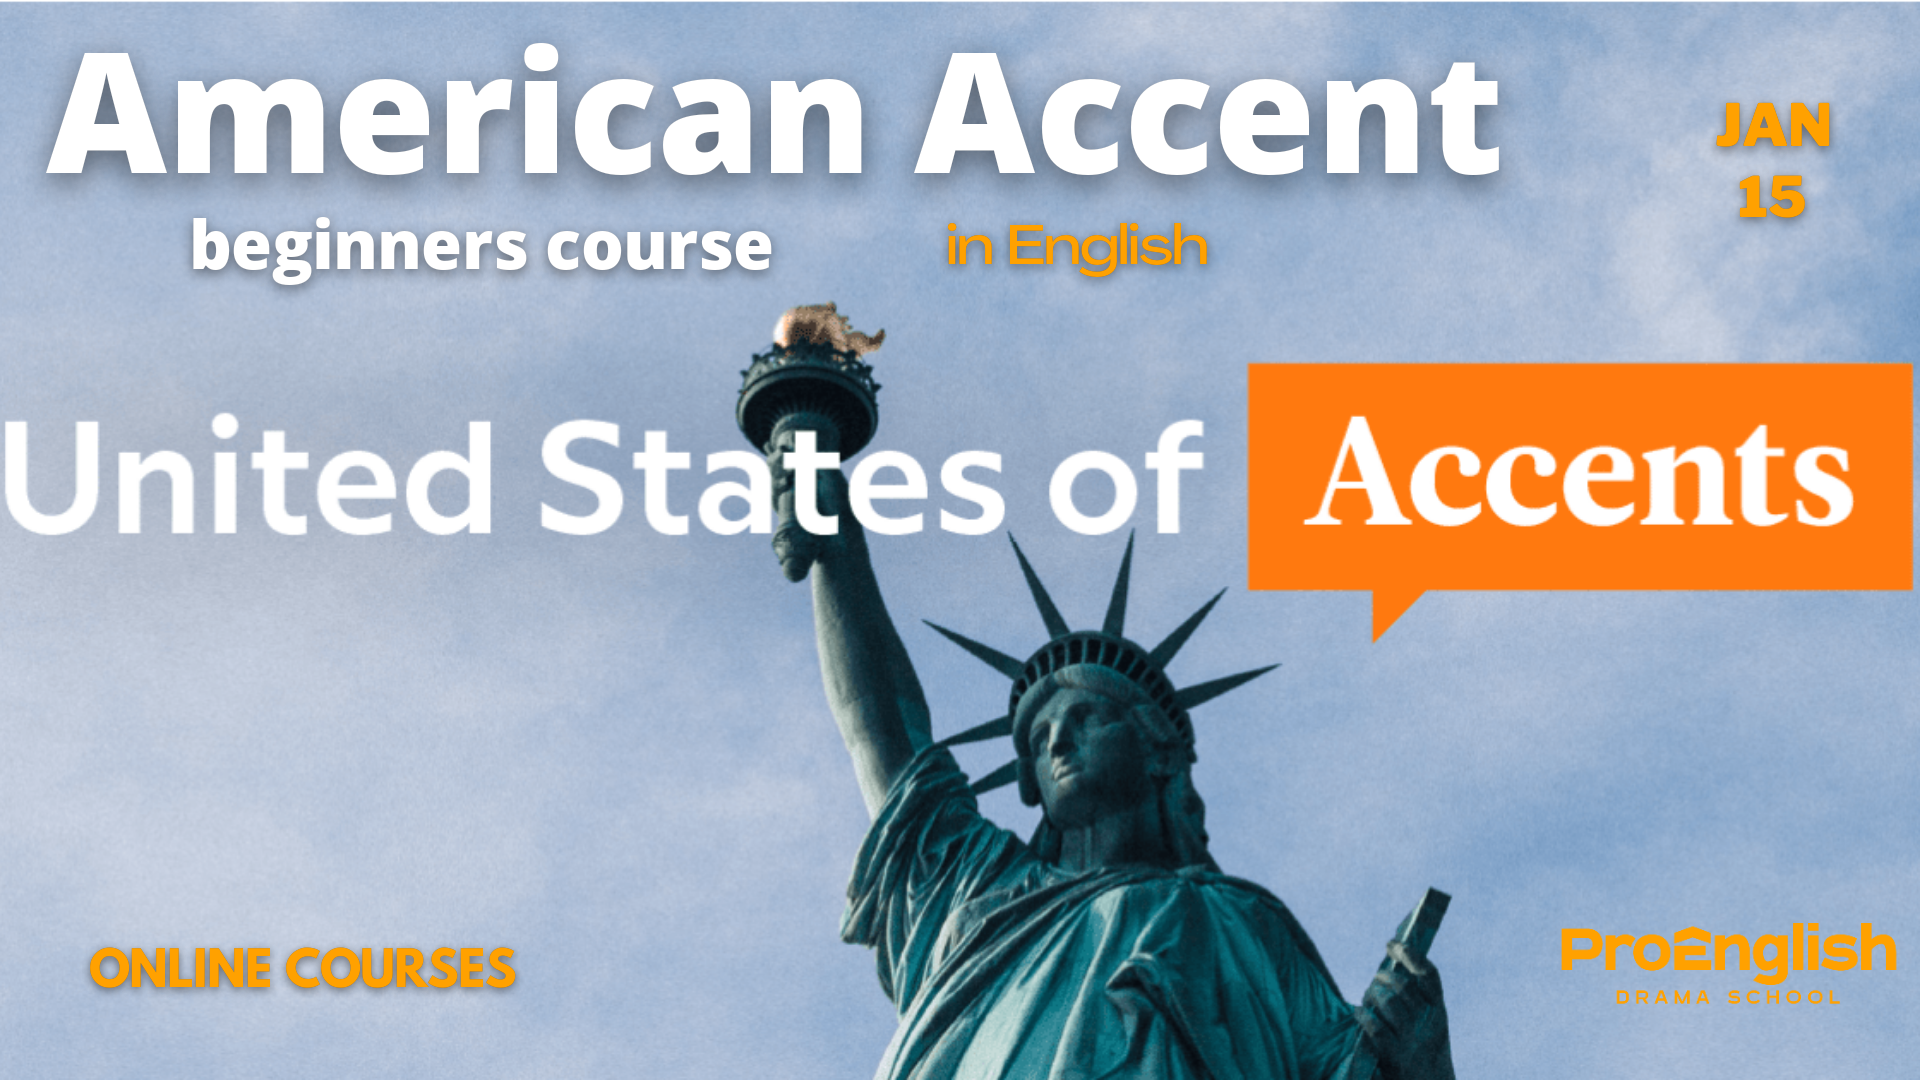 news - 15.01.2021 – American Accent Online Course